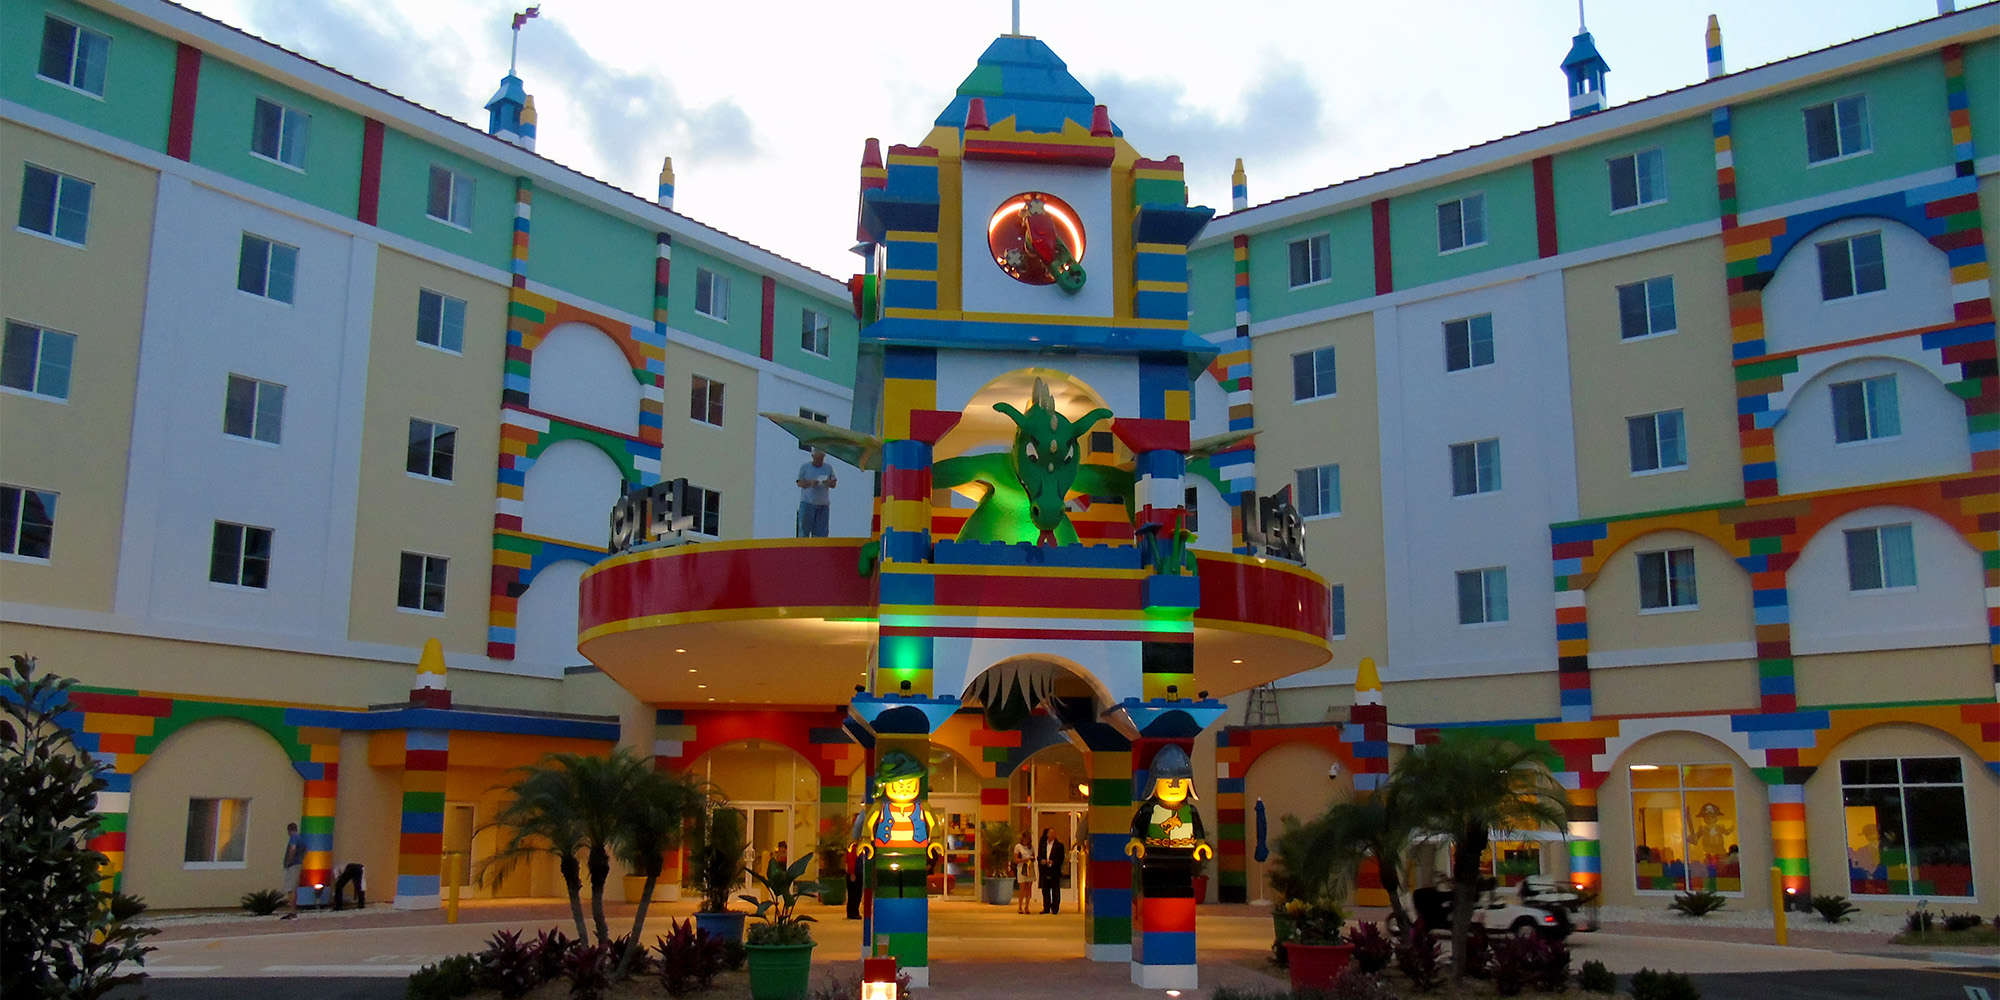 Lego Hotel front entry3_2000x1000